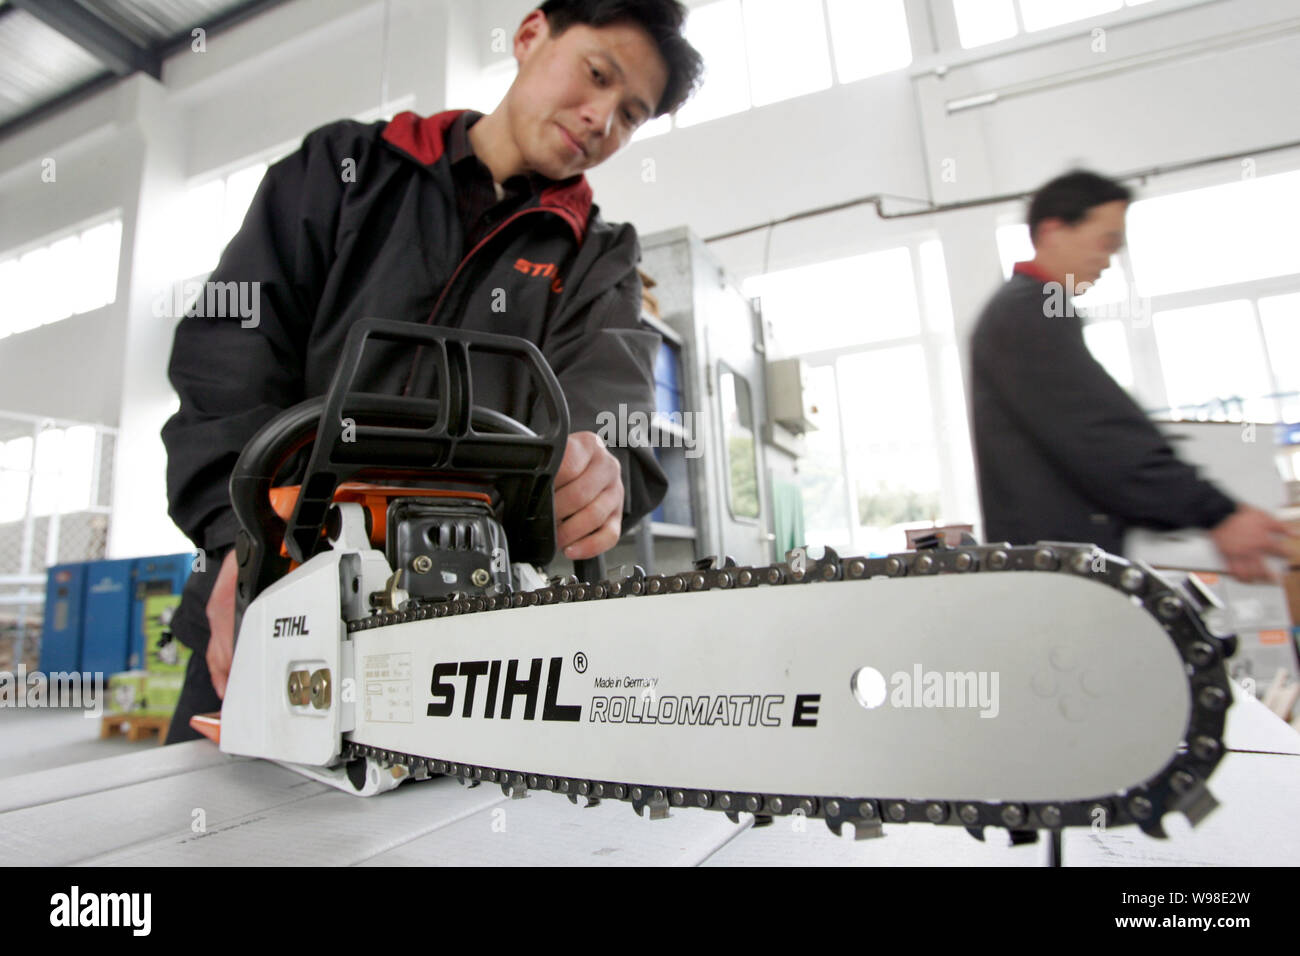 A Chinese worker shows an electric motor saw at the plant of